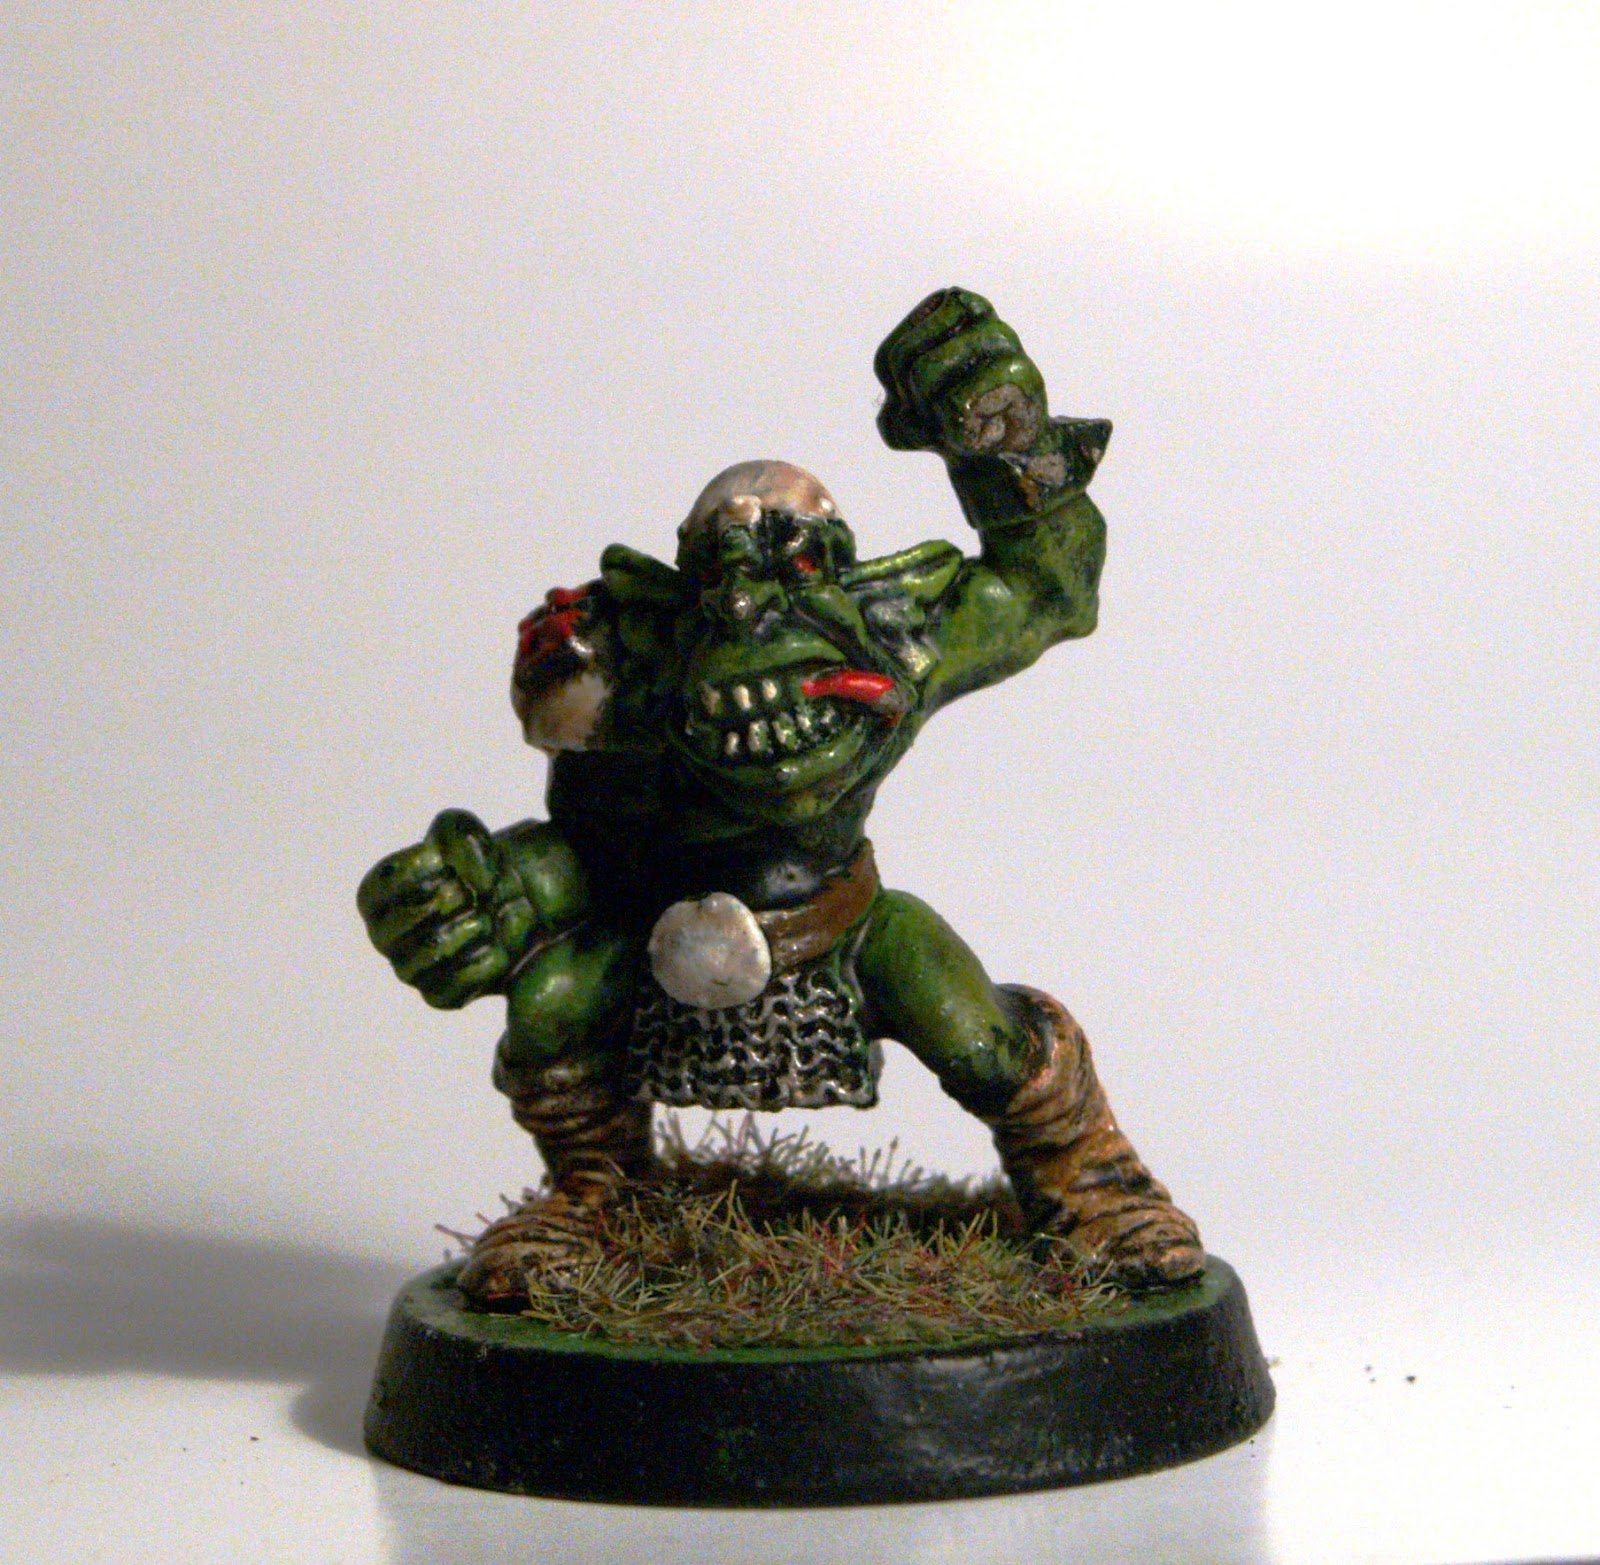 blood bowl 2 strategy guide